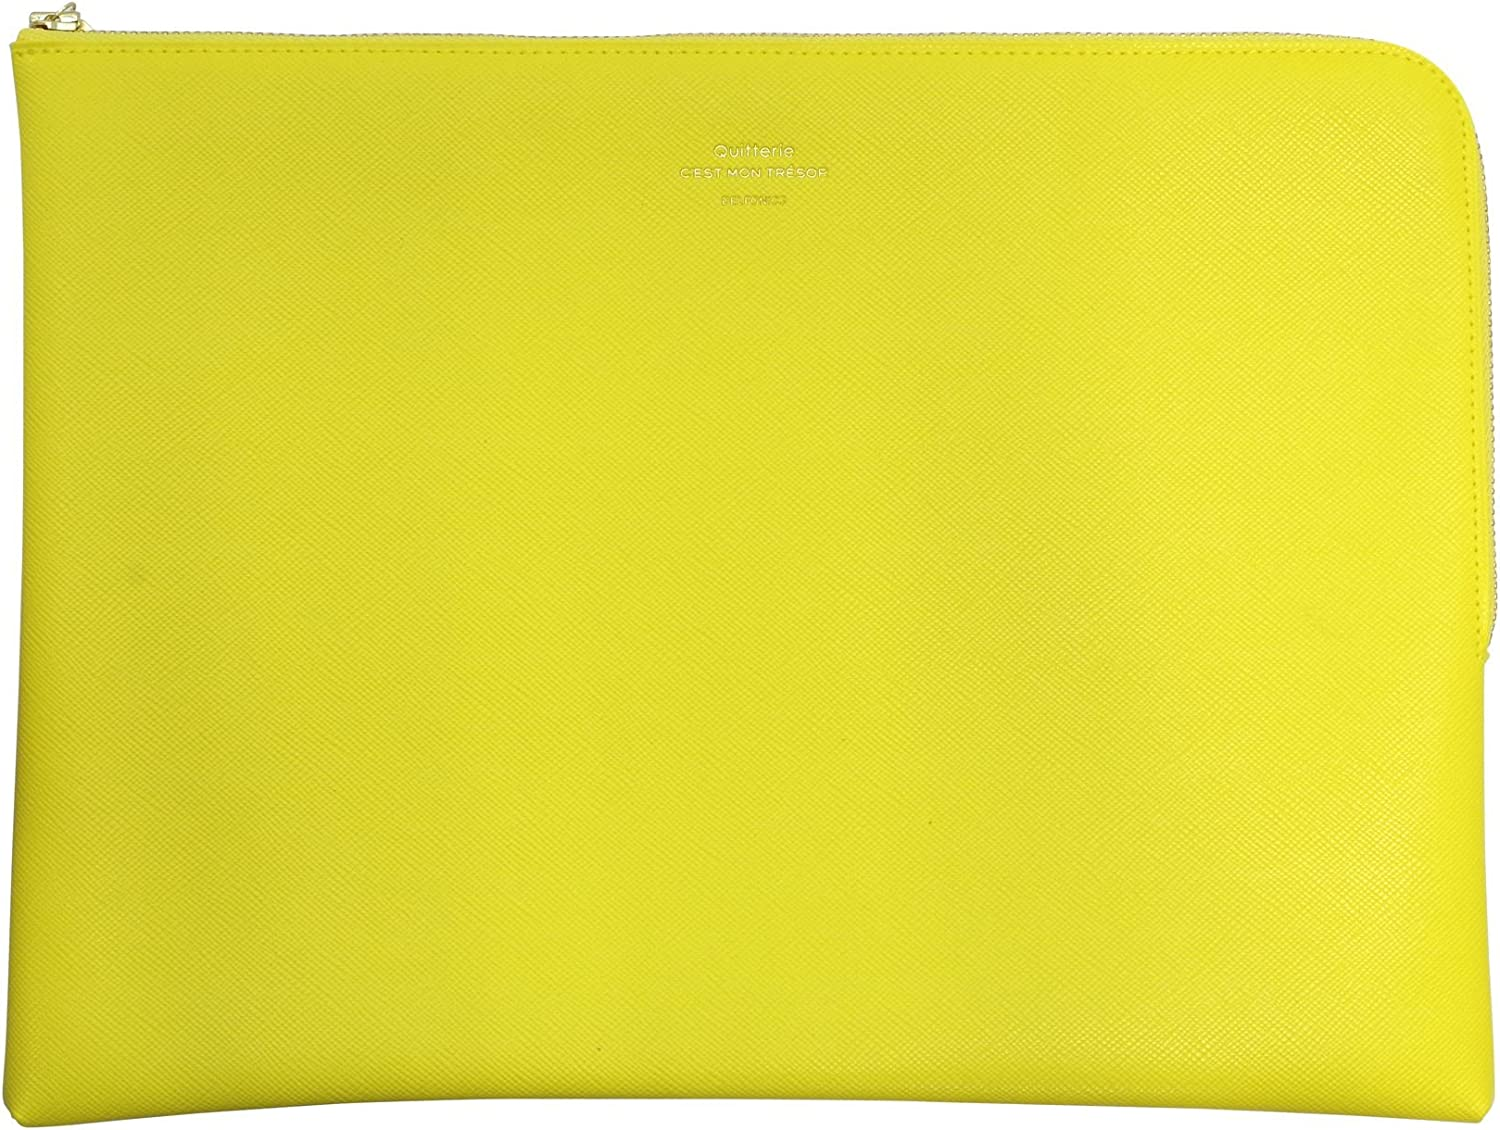 Quitterie Pouch Size L 500346 Yellow DELFONICS